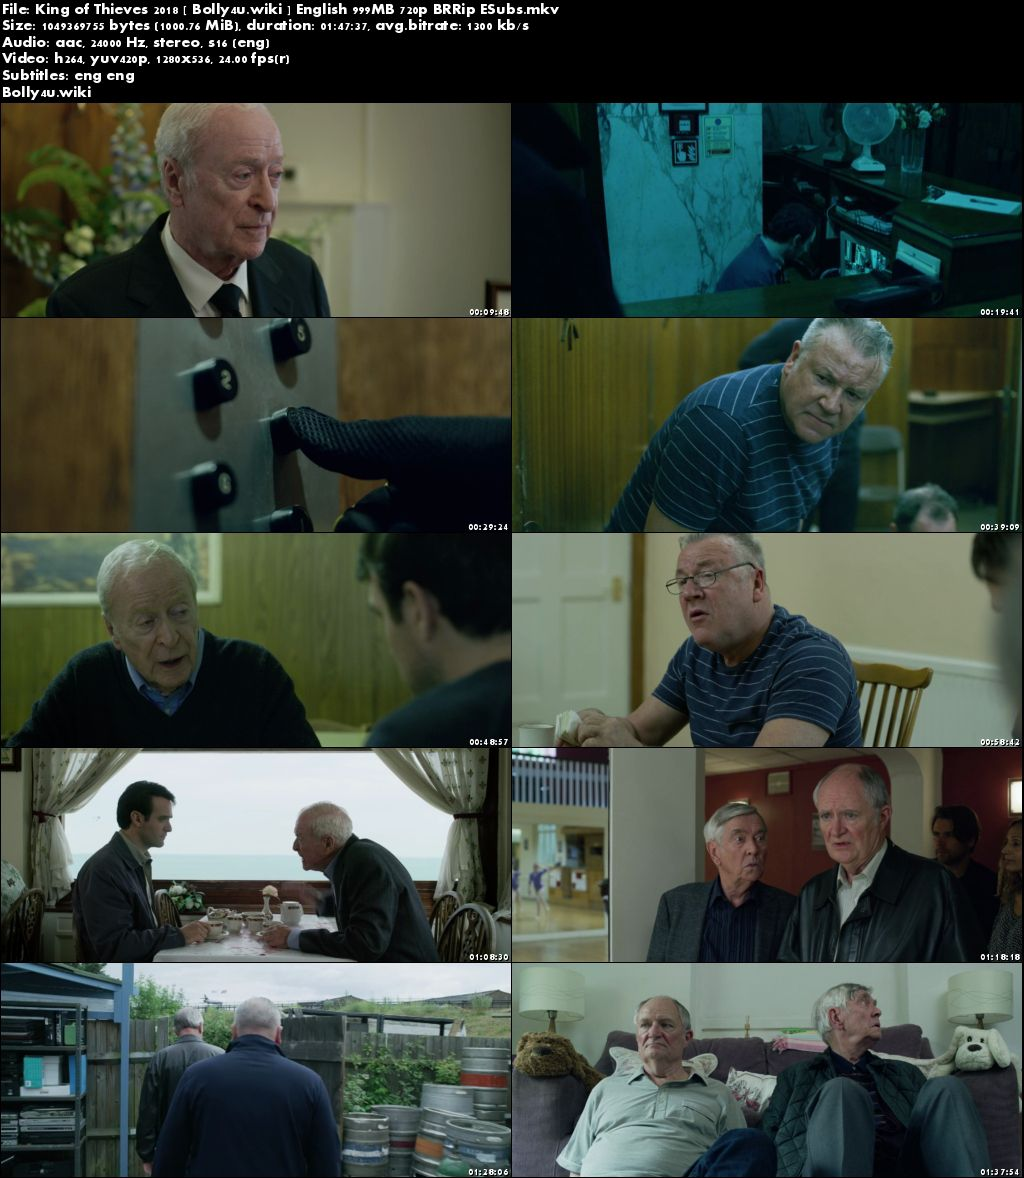 King of Thieves 2018 BRRip 300Mb English 480p ESub Download